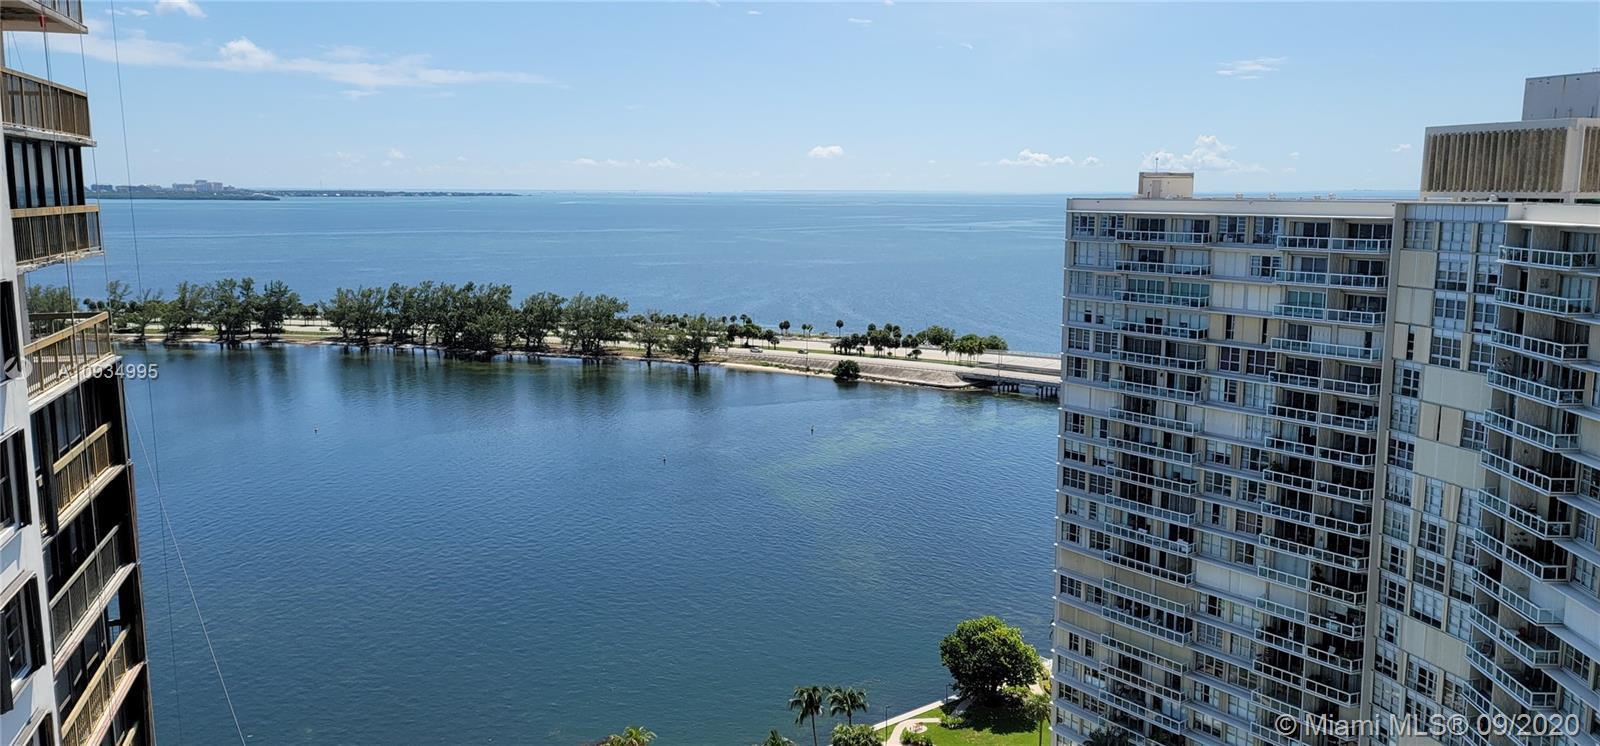 Brickell Bay Club is the perfect location for peace and quiet but 5 min to all restaurants and shops